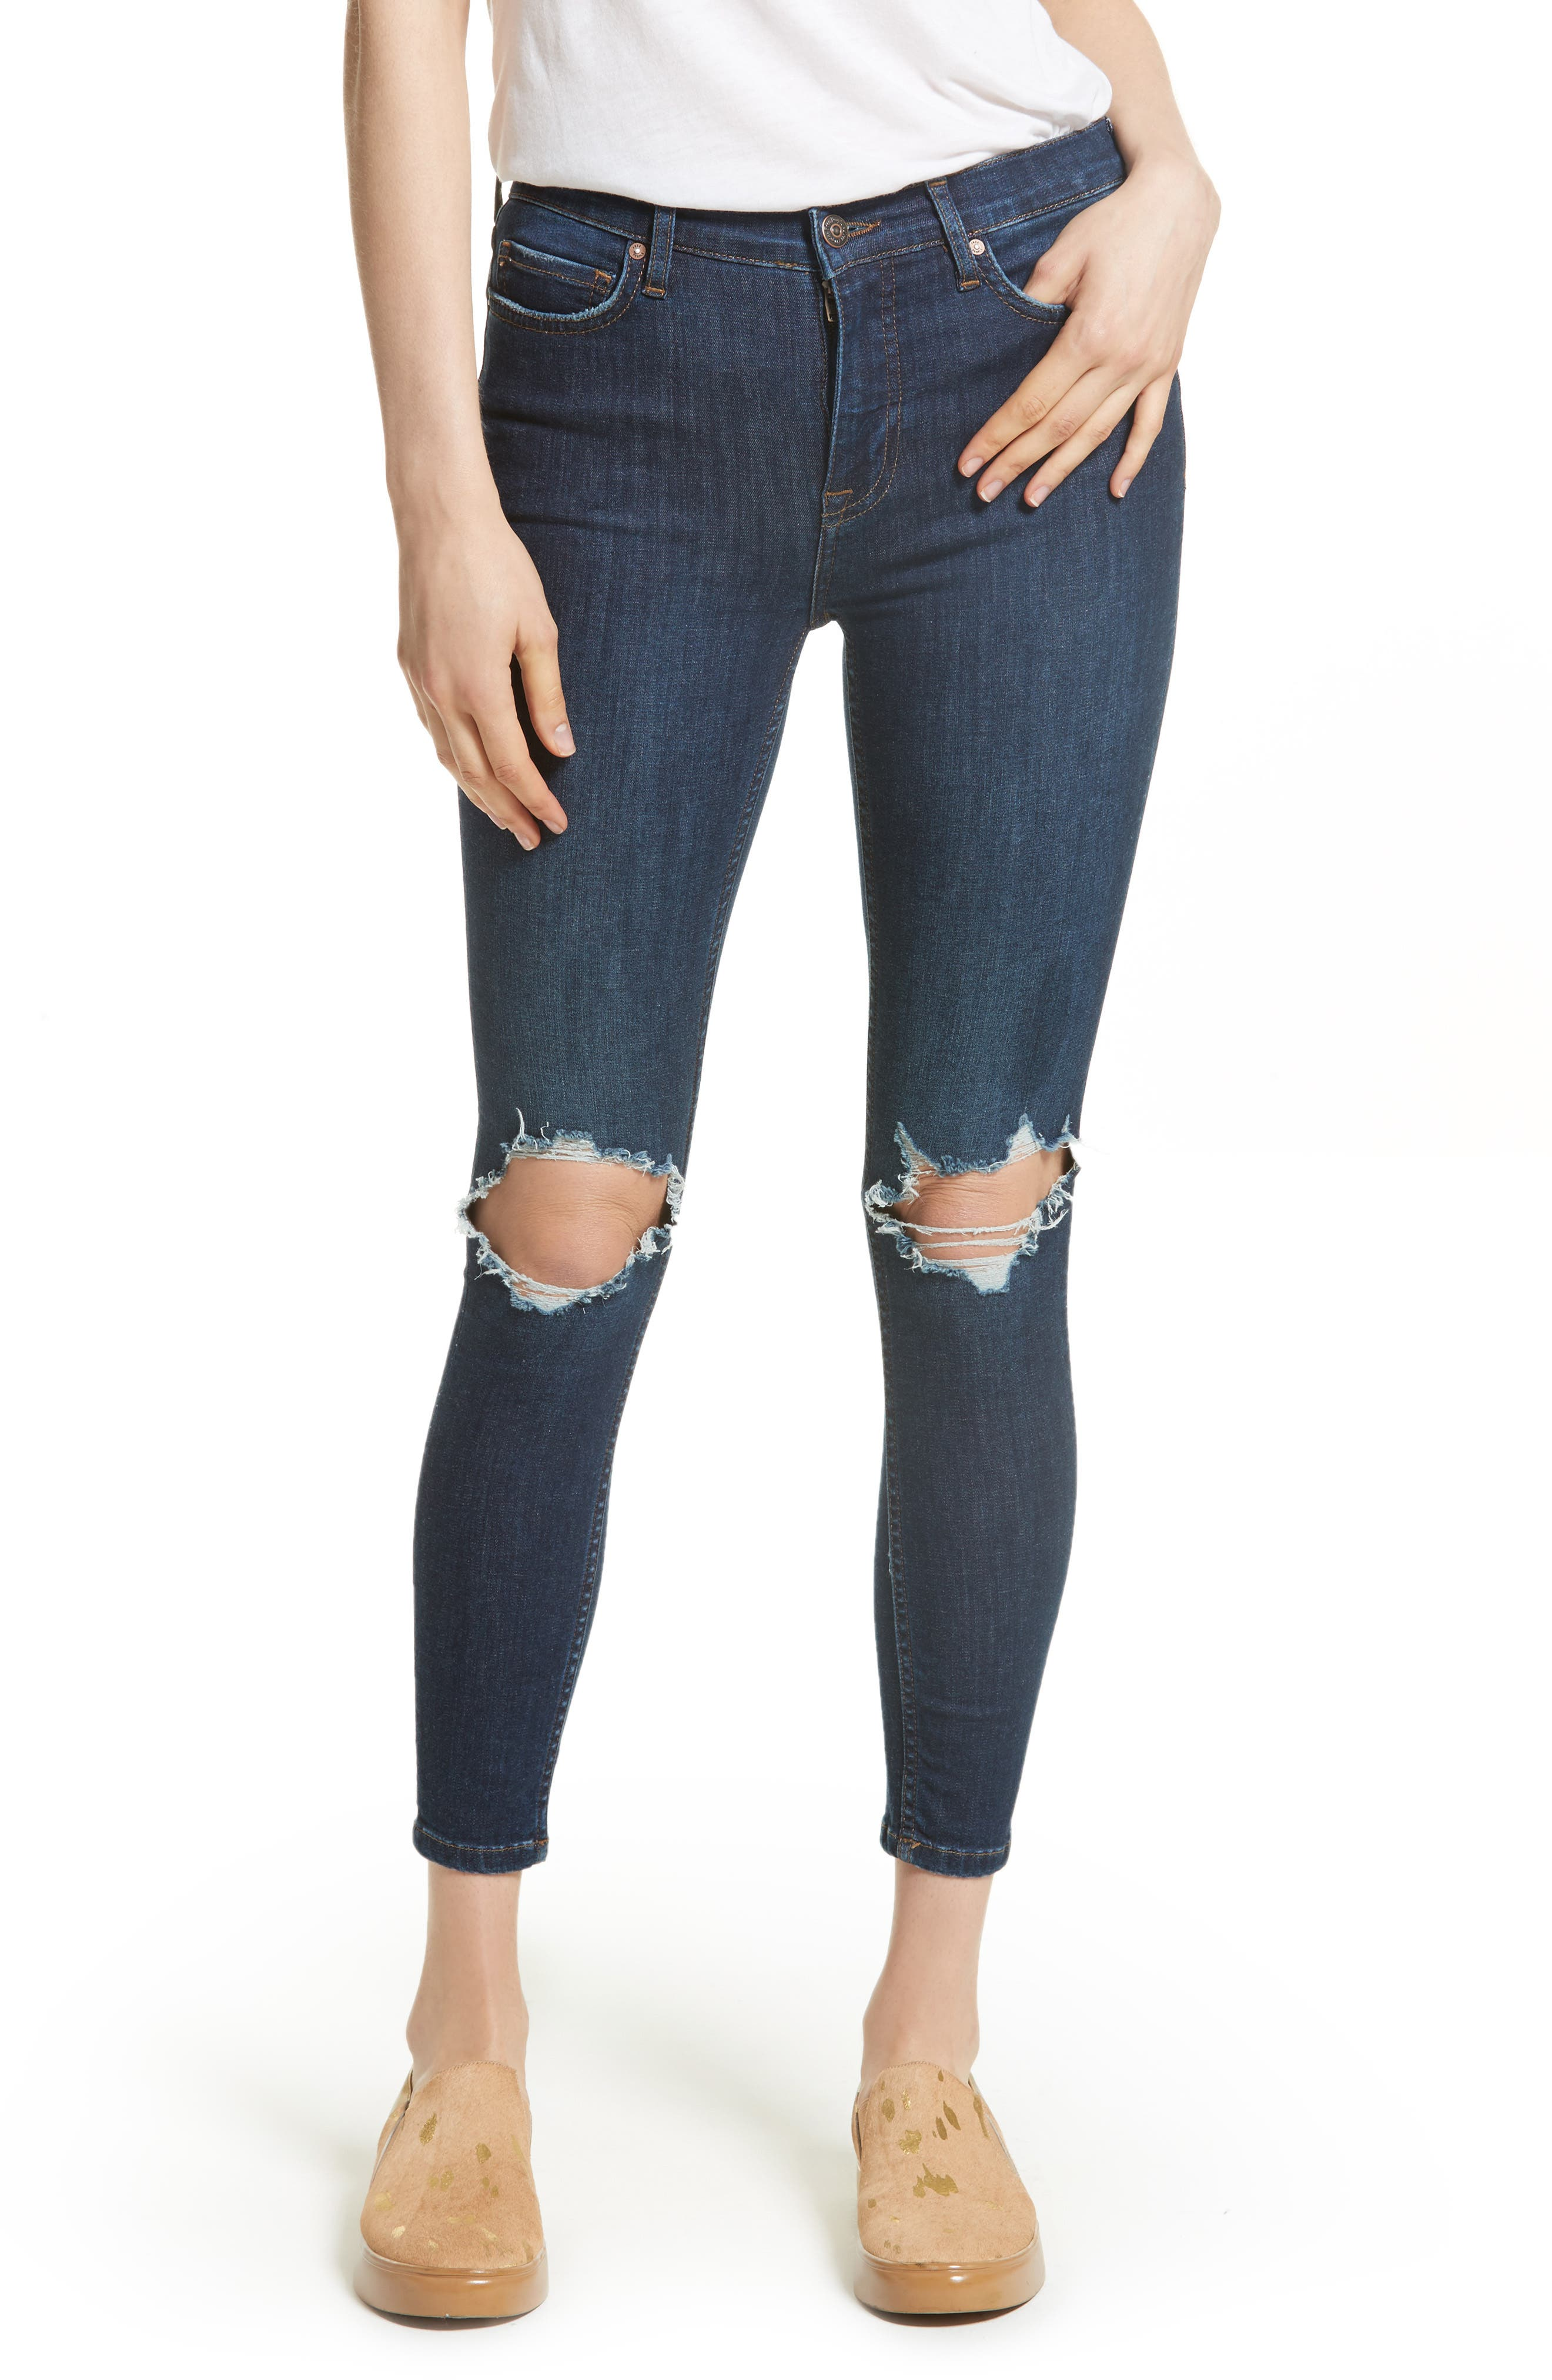 Alternate Image 1 Selected - Free People High Rise Busted Knee Skinny Jeans (Dark Blue)